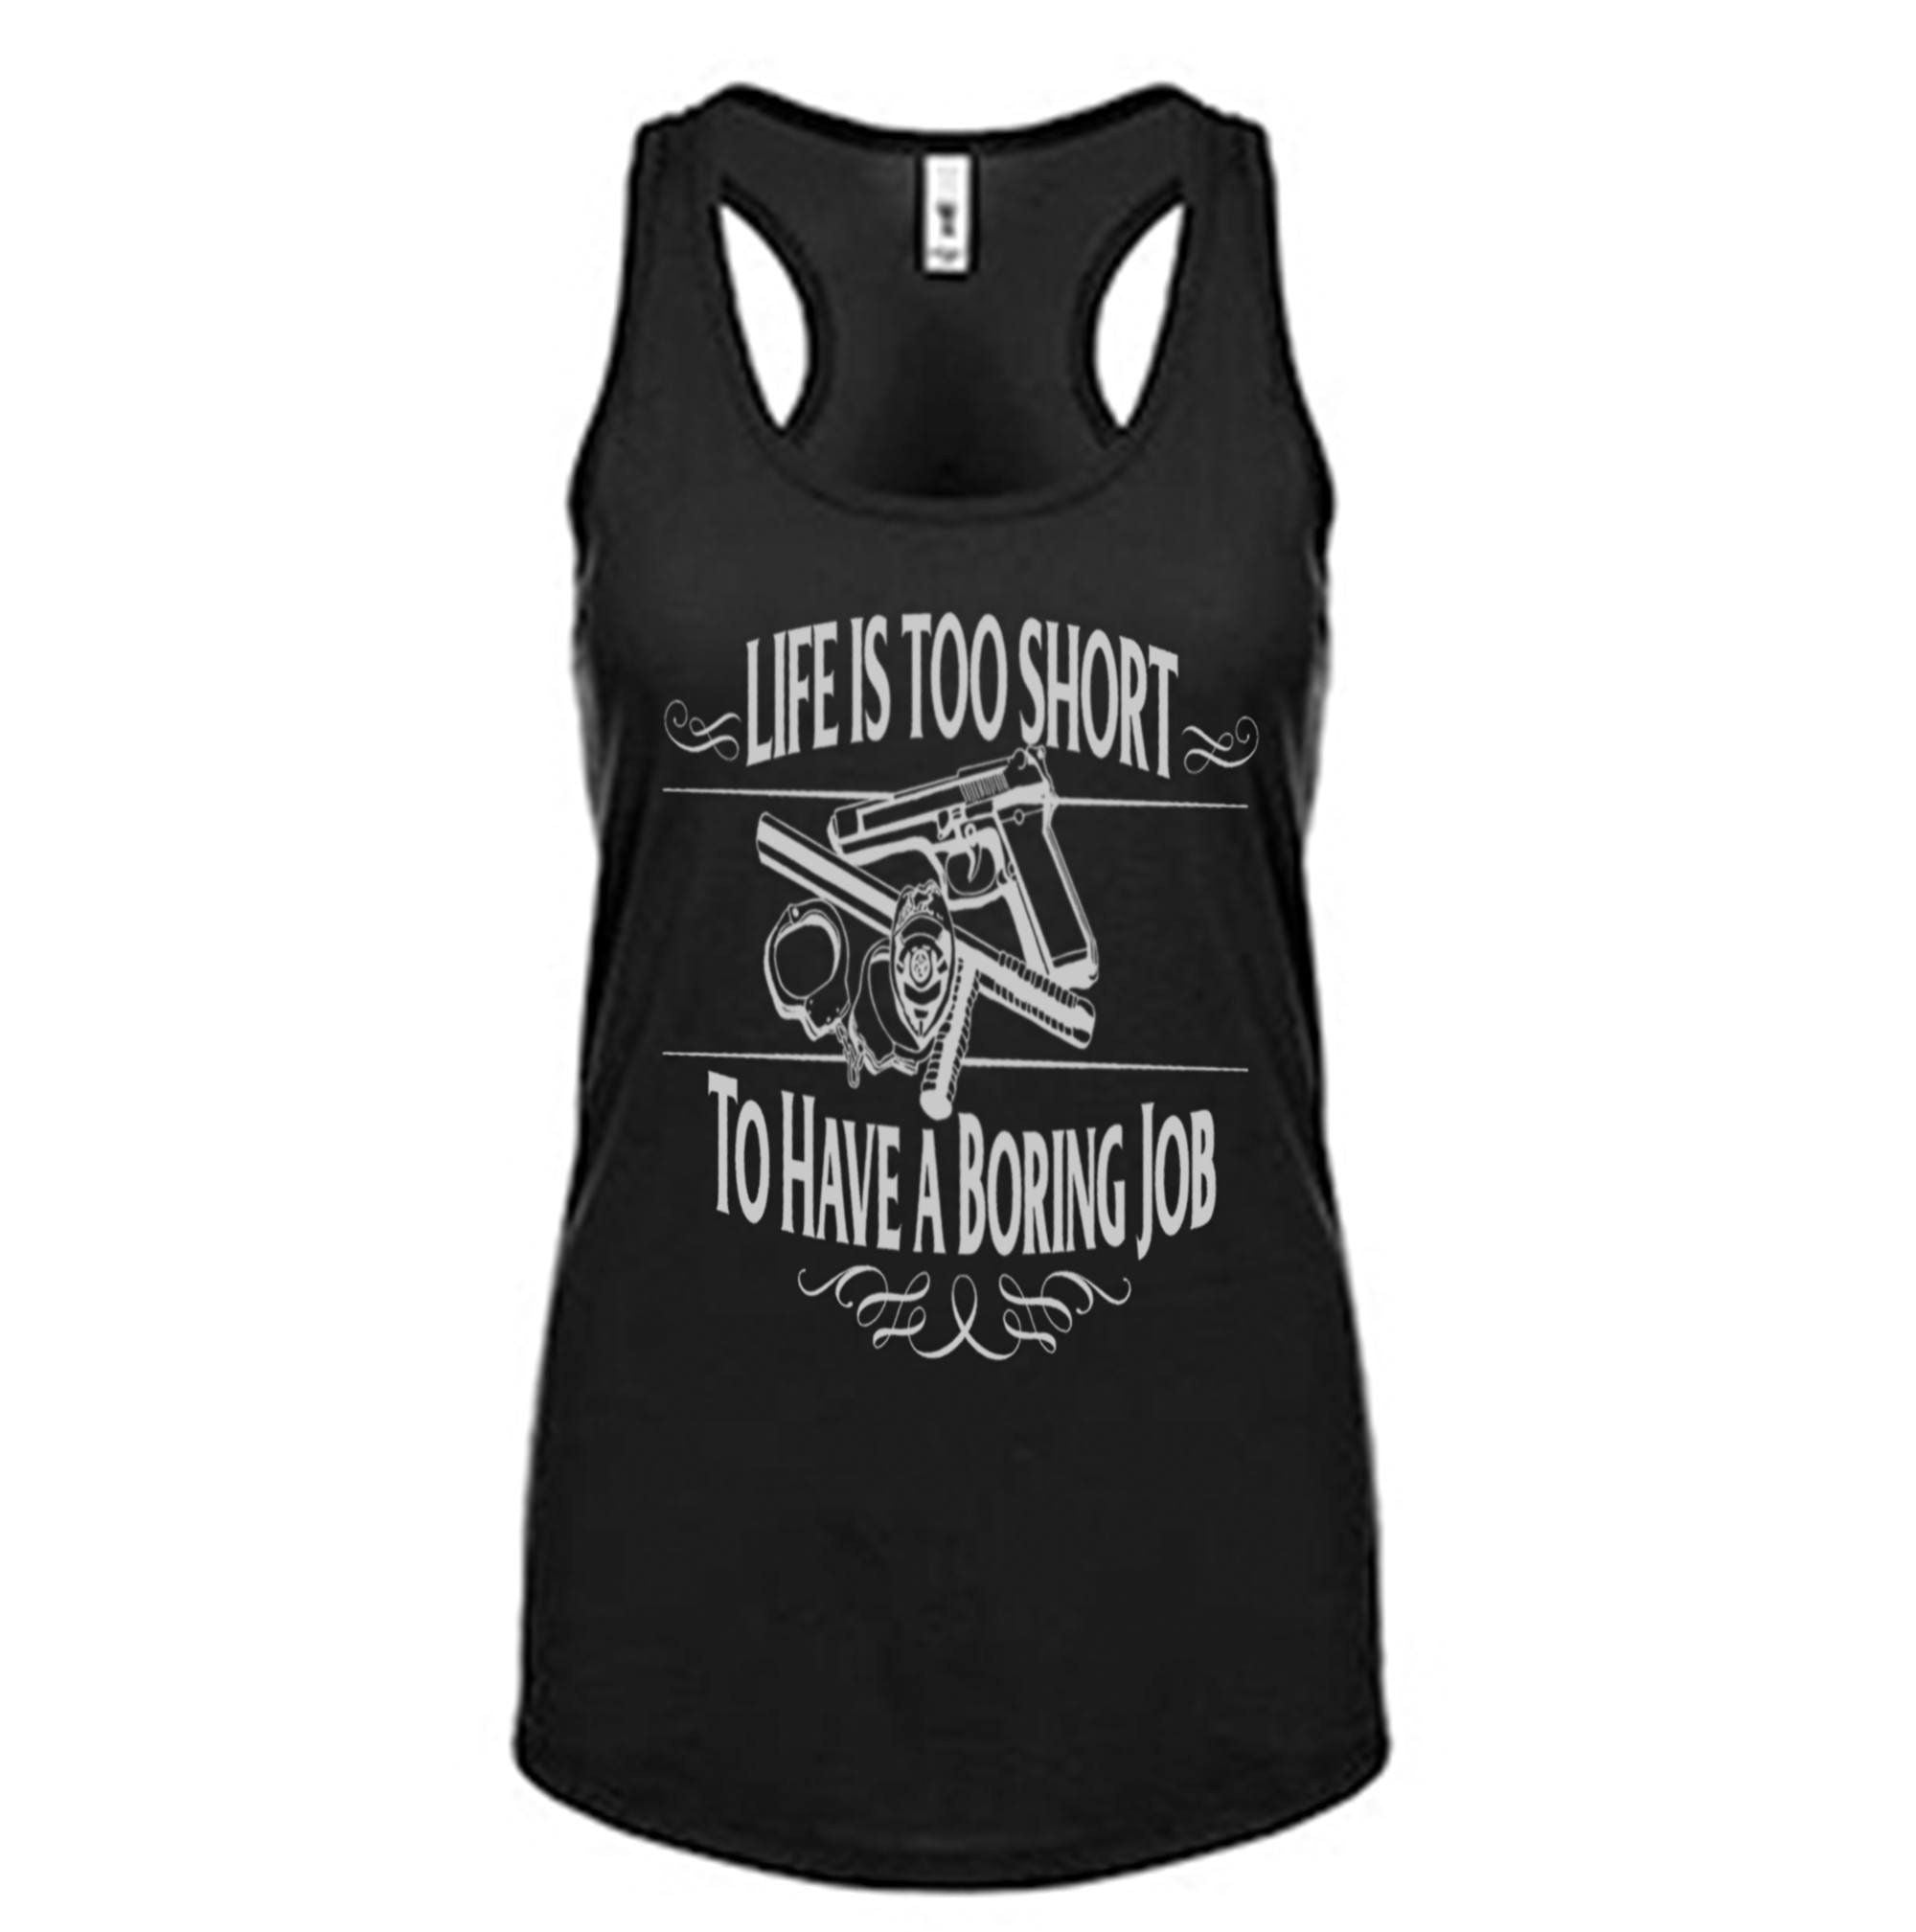 LIFE IS TOO SHORT FOR A BORING JOB FITTED RACERBACK TANK TOP